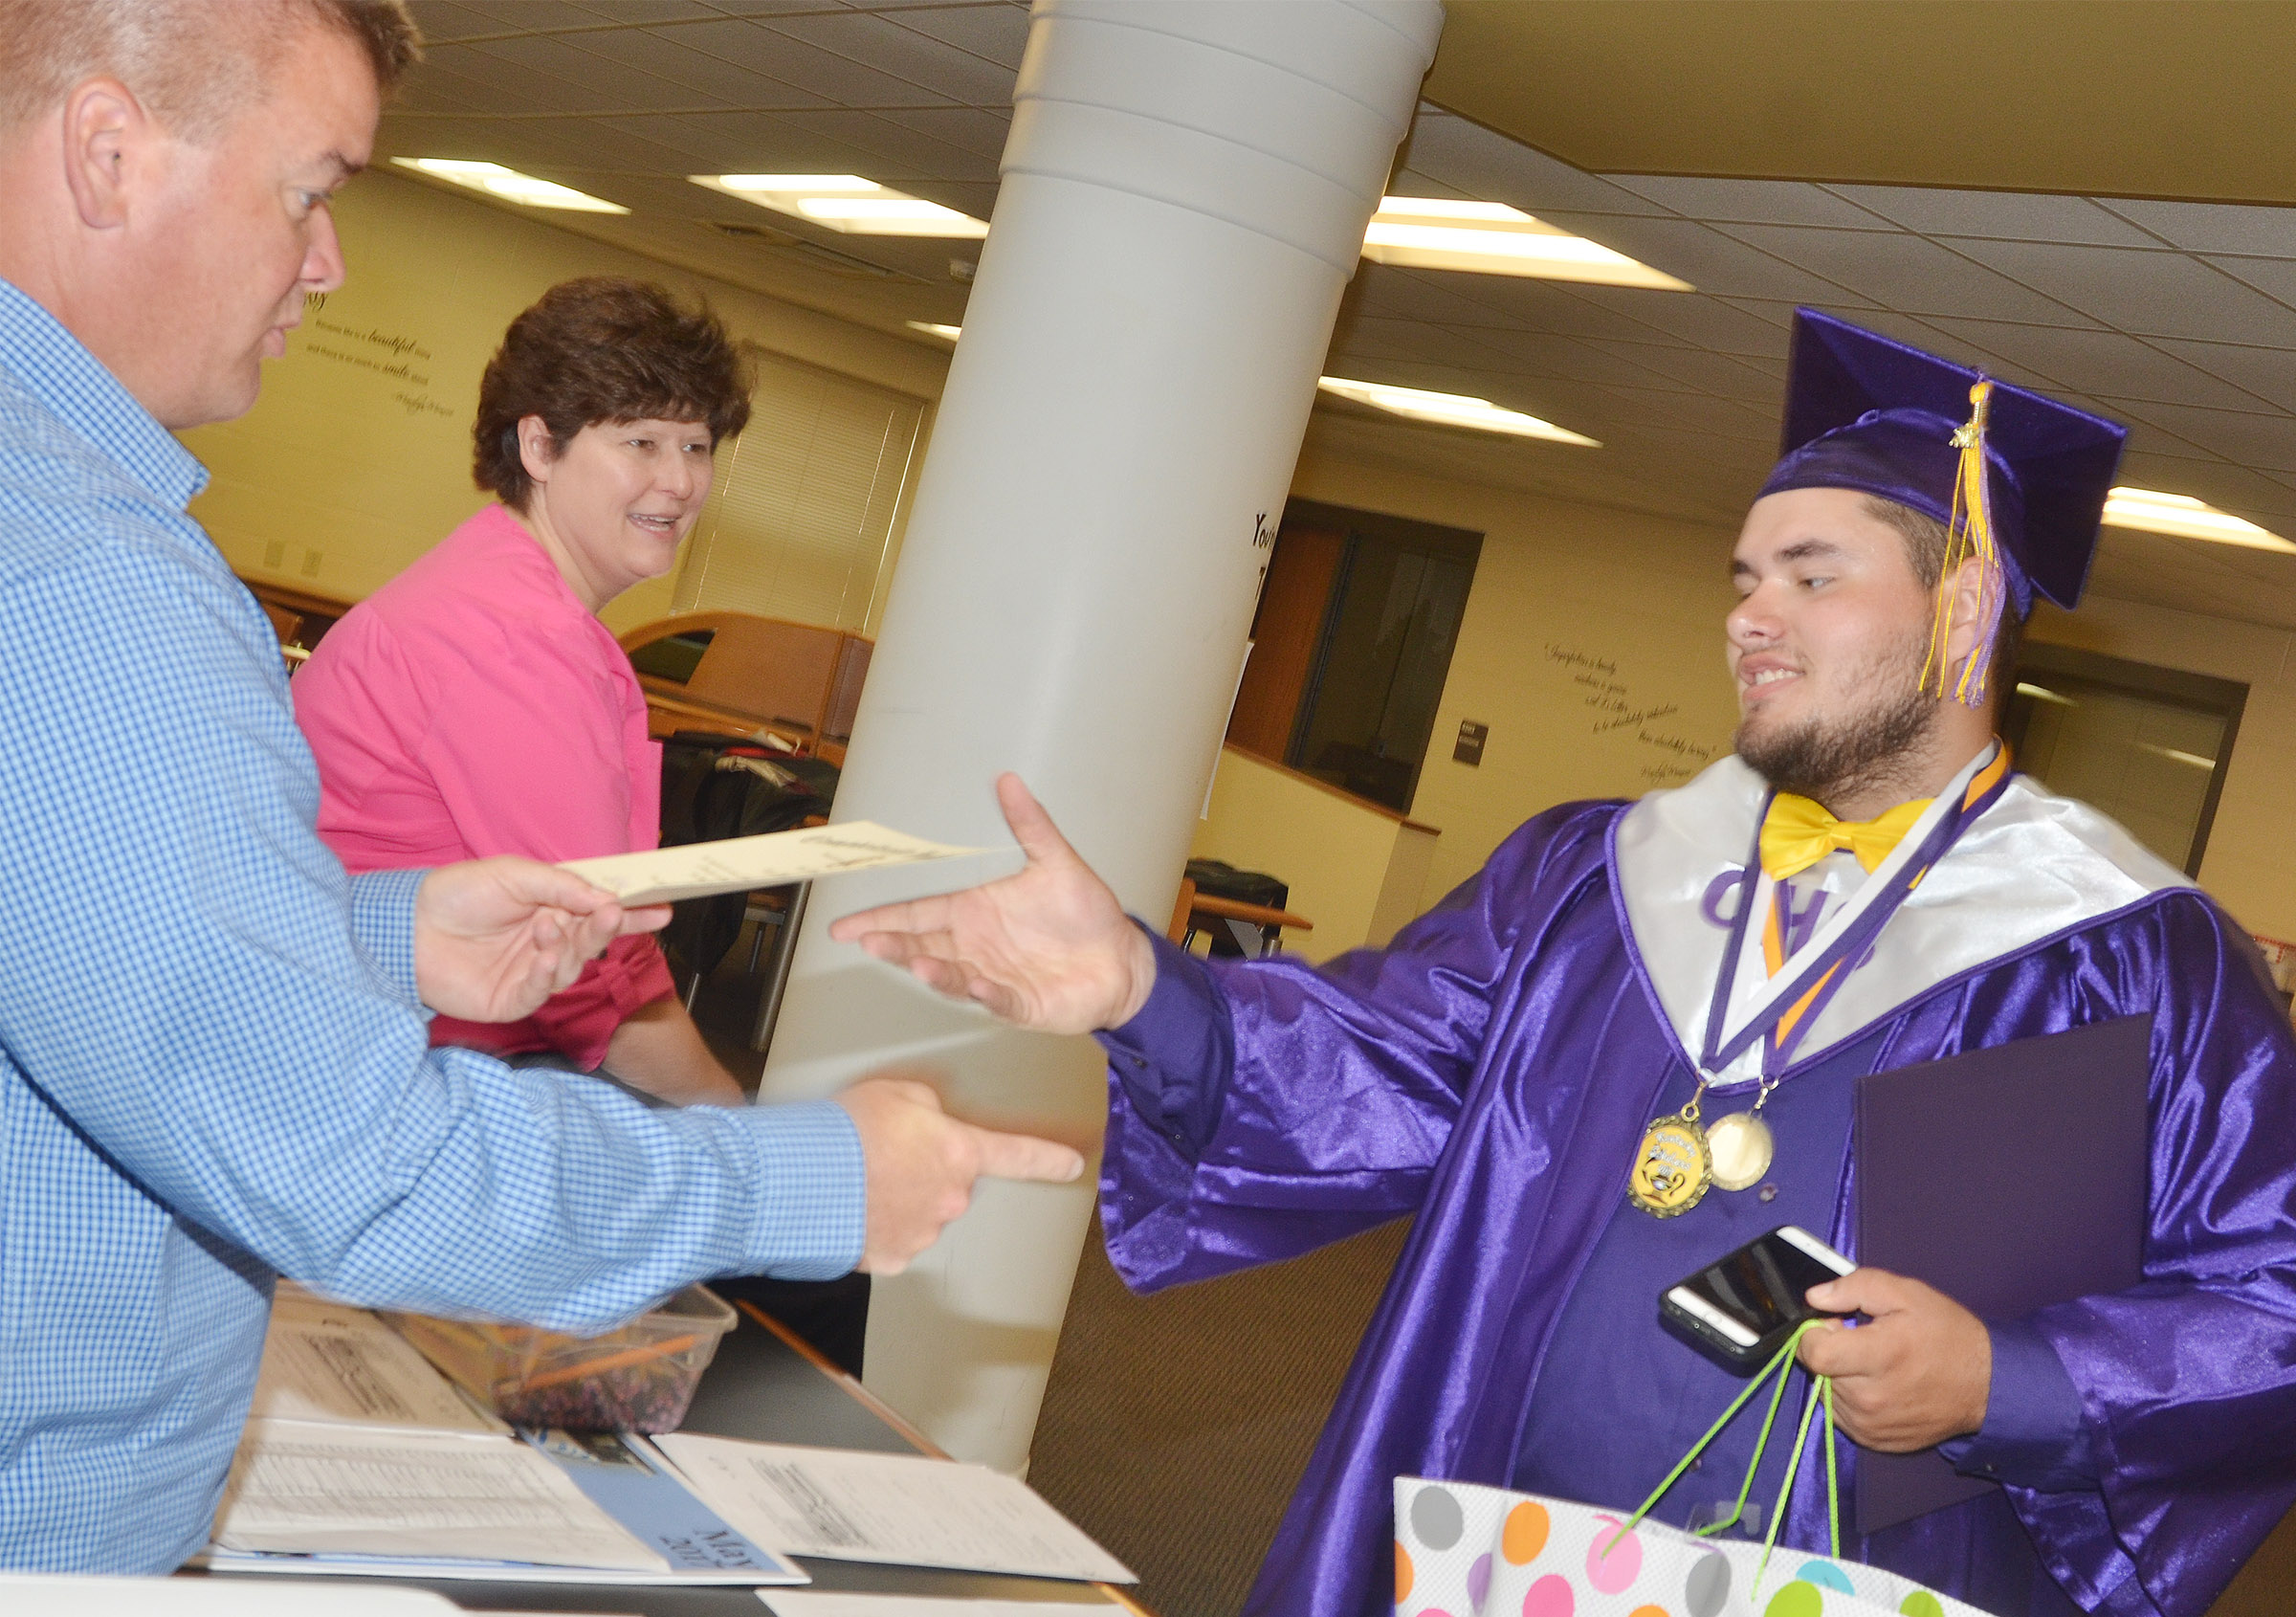 CHS graduate Logan Brown receives his diploma from his football coach Dale Estes.